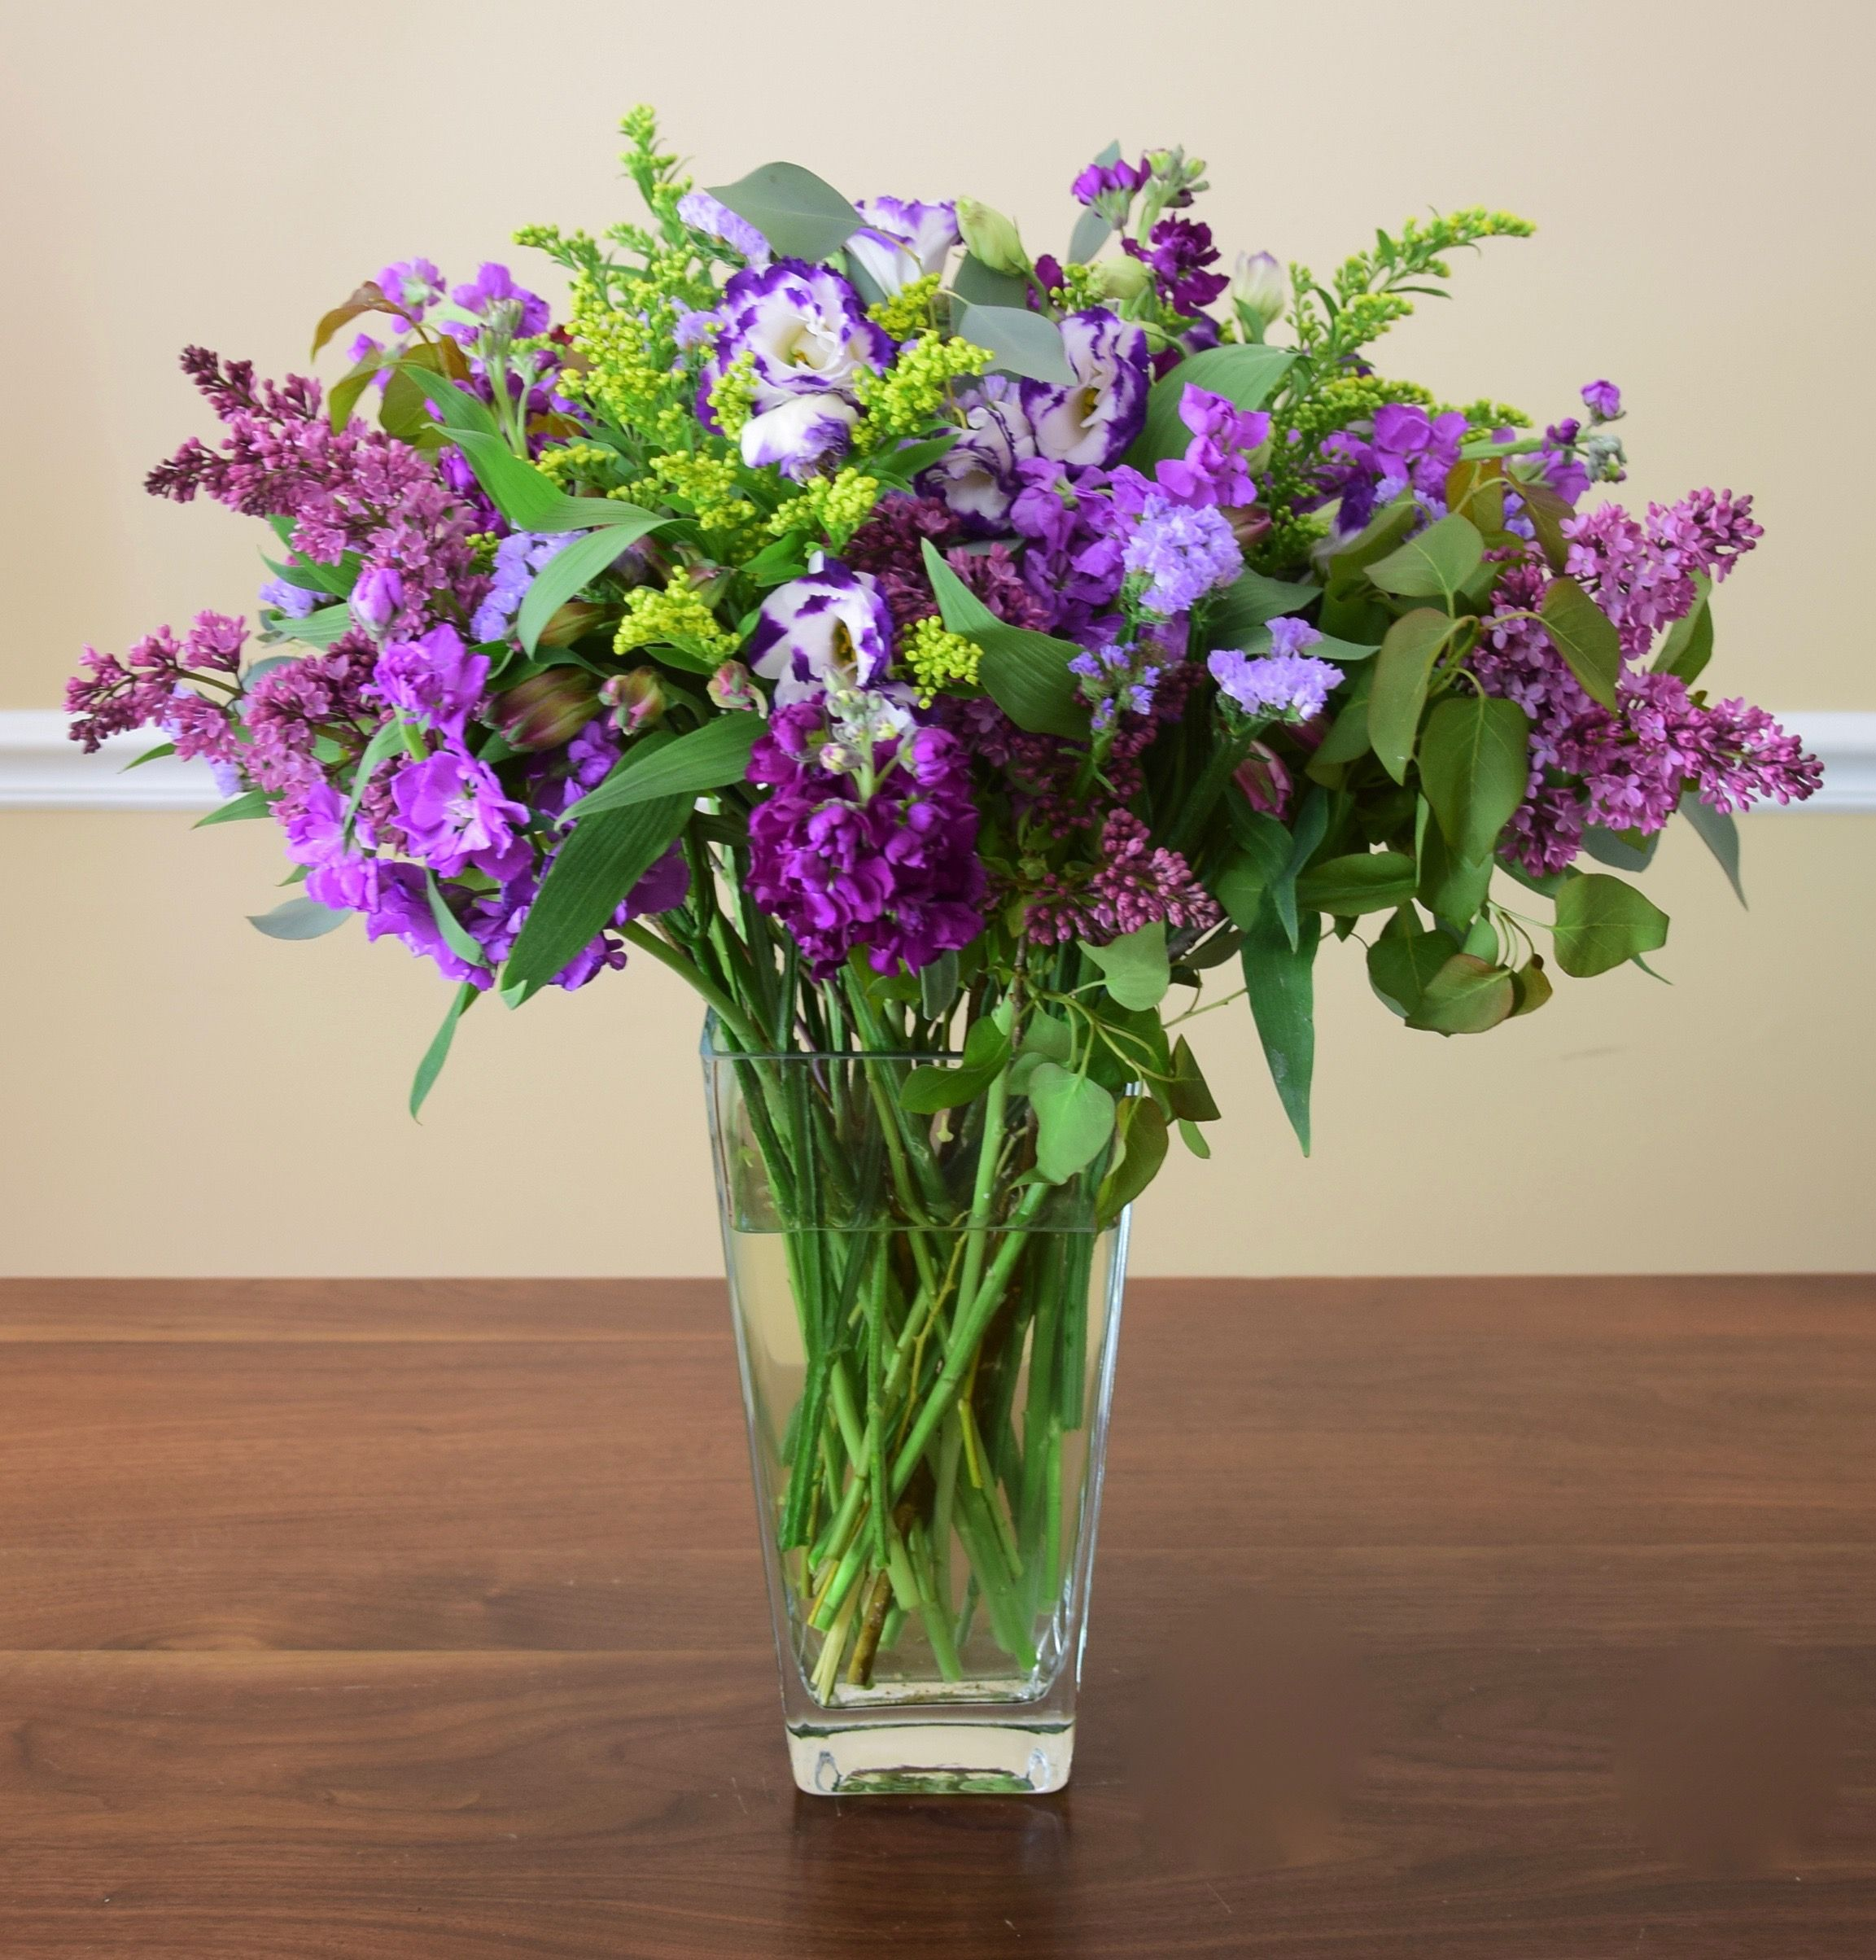 Shades Of Purple In A Flower Arrangement Lilac Stock Lisiantus With Images Fresh Flowers Arrangements Flower Arrangements Flowers